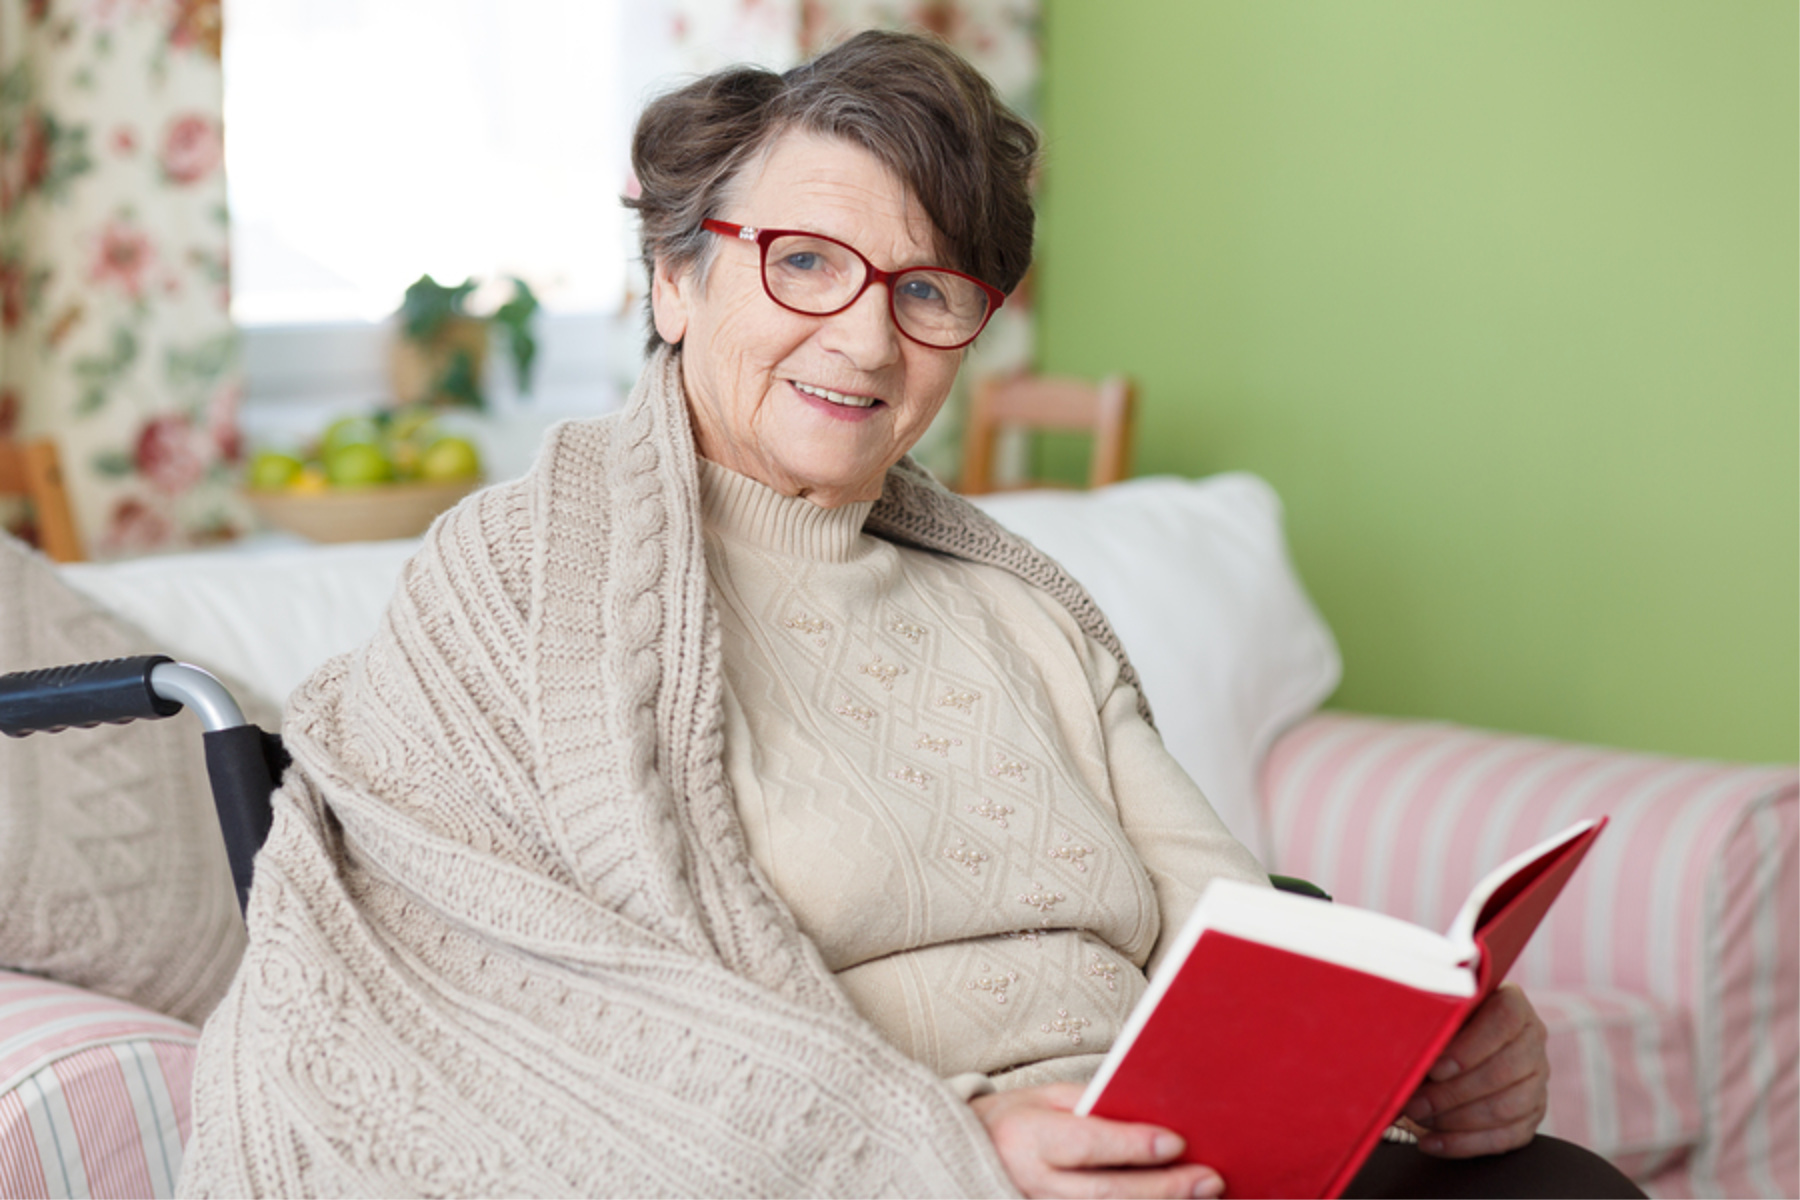 Elderly Care in West Mifflin PA: Weighted Blanket